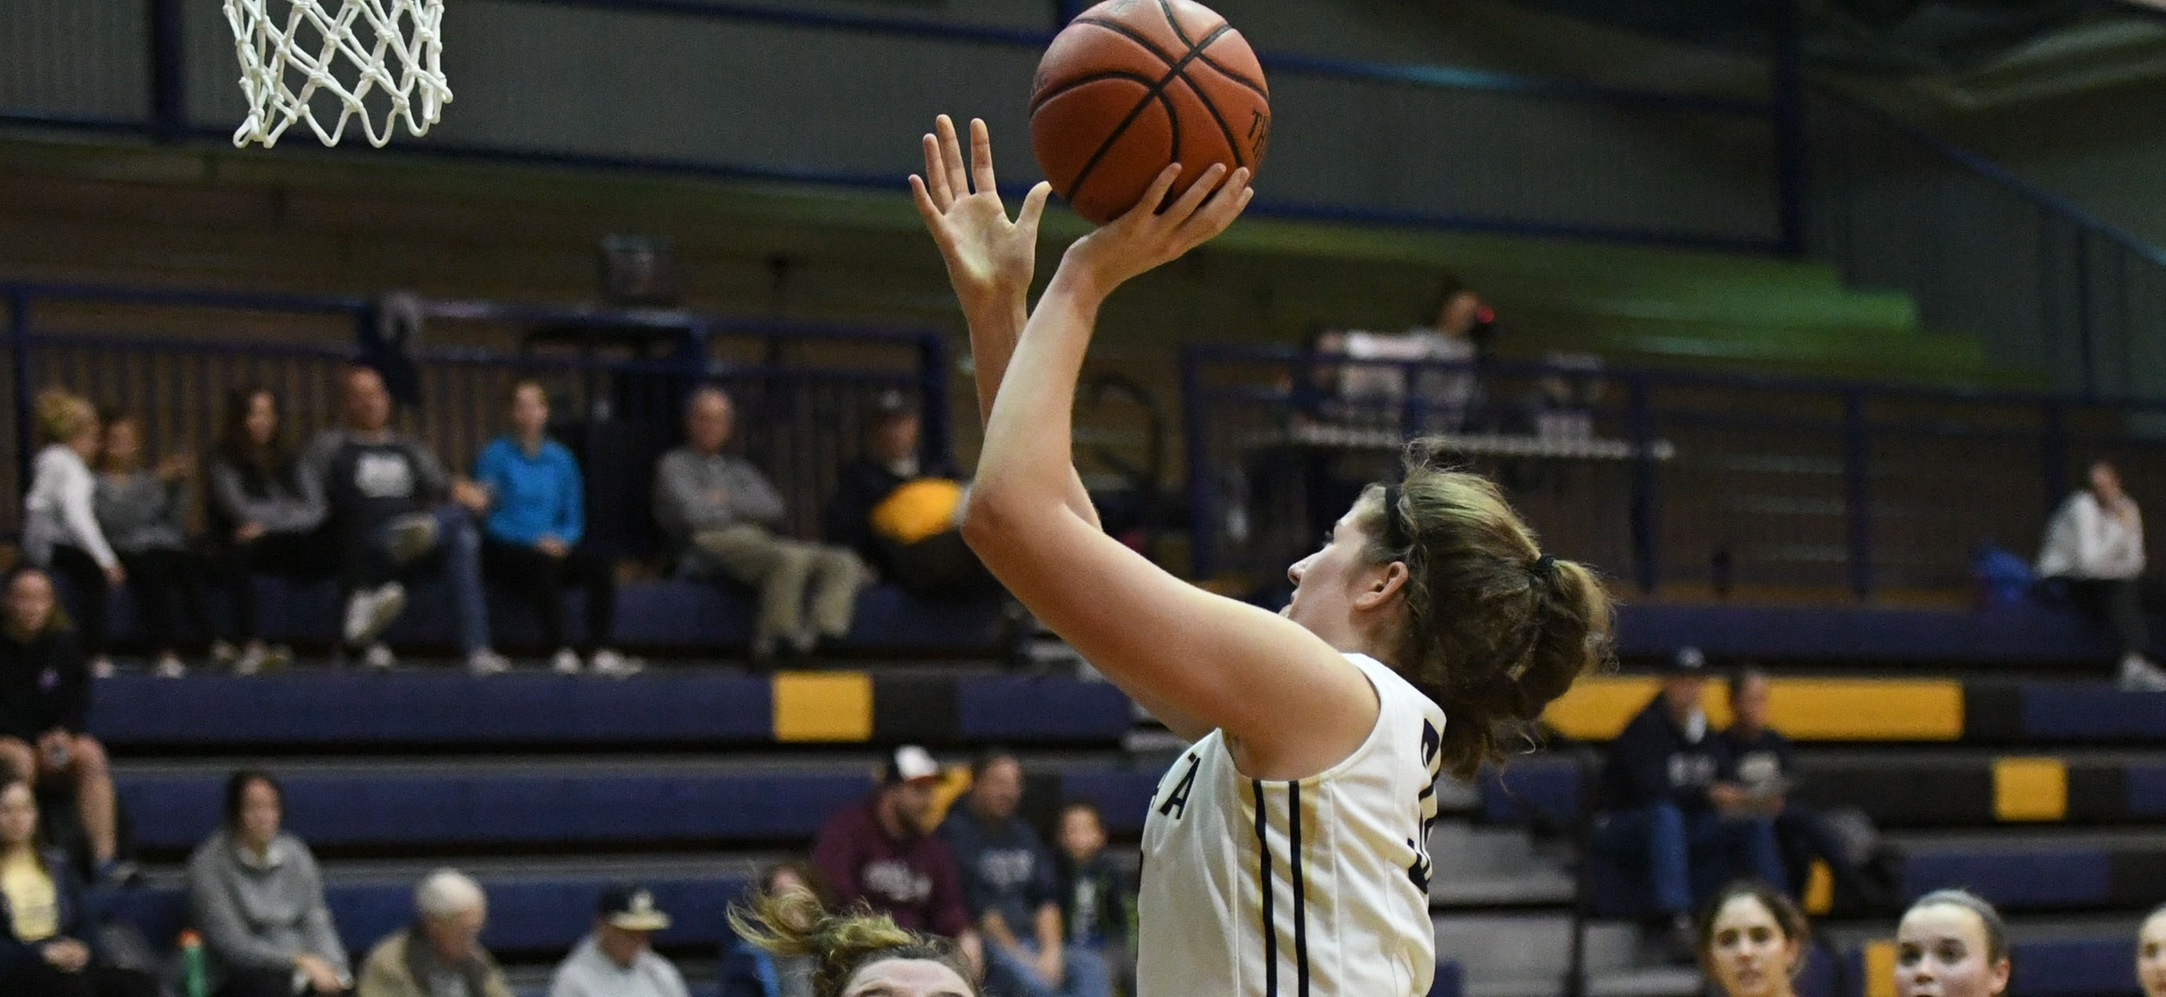 Gracie Stauffer had her fifth double double of the season as she tallied 18 points and 14 rebounds to go along with three blocks and two steals.